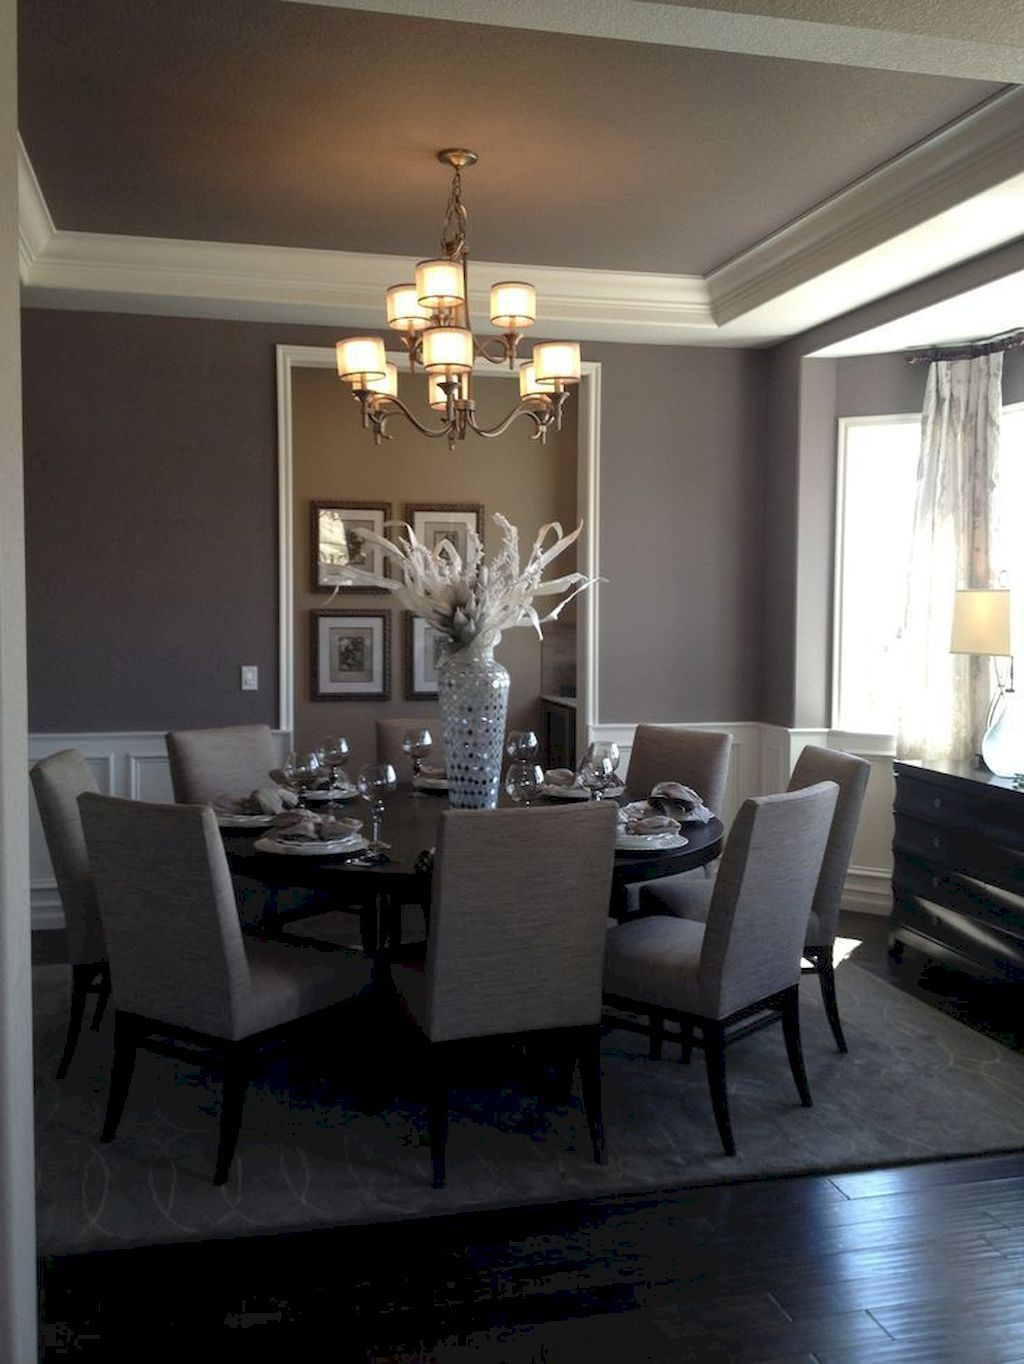 Round Dining Room Tables Decoration Ideas Home To Z Elegant Dining Room Dining Room Table Centerpieces Round Dining Room